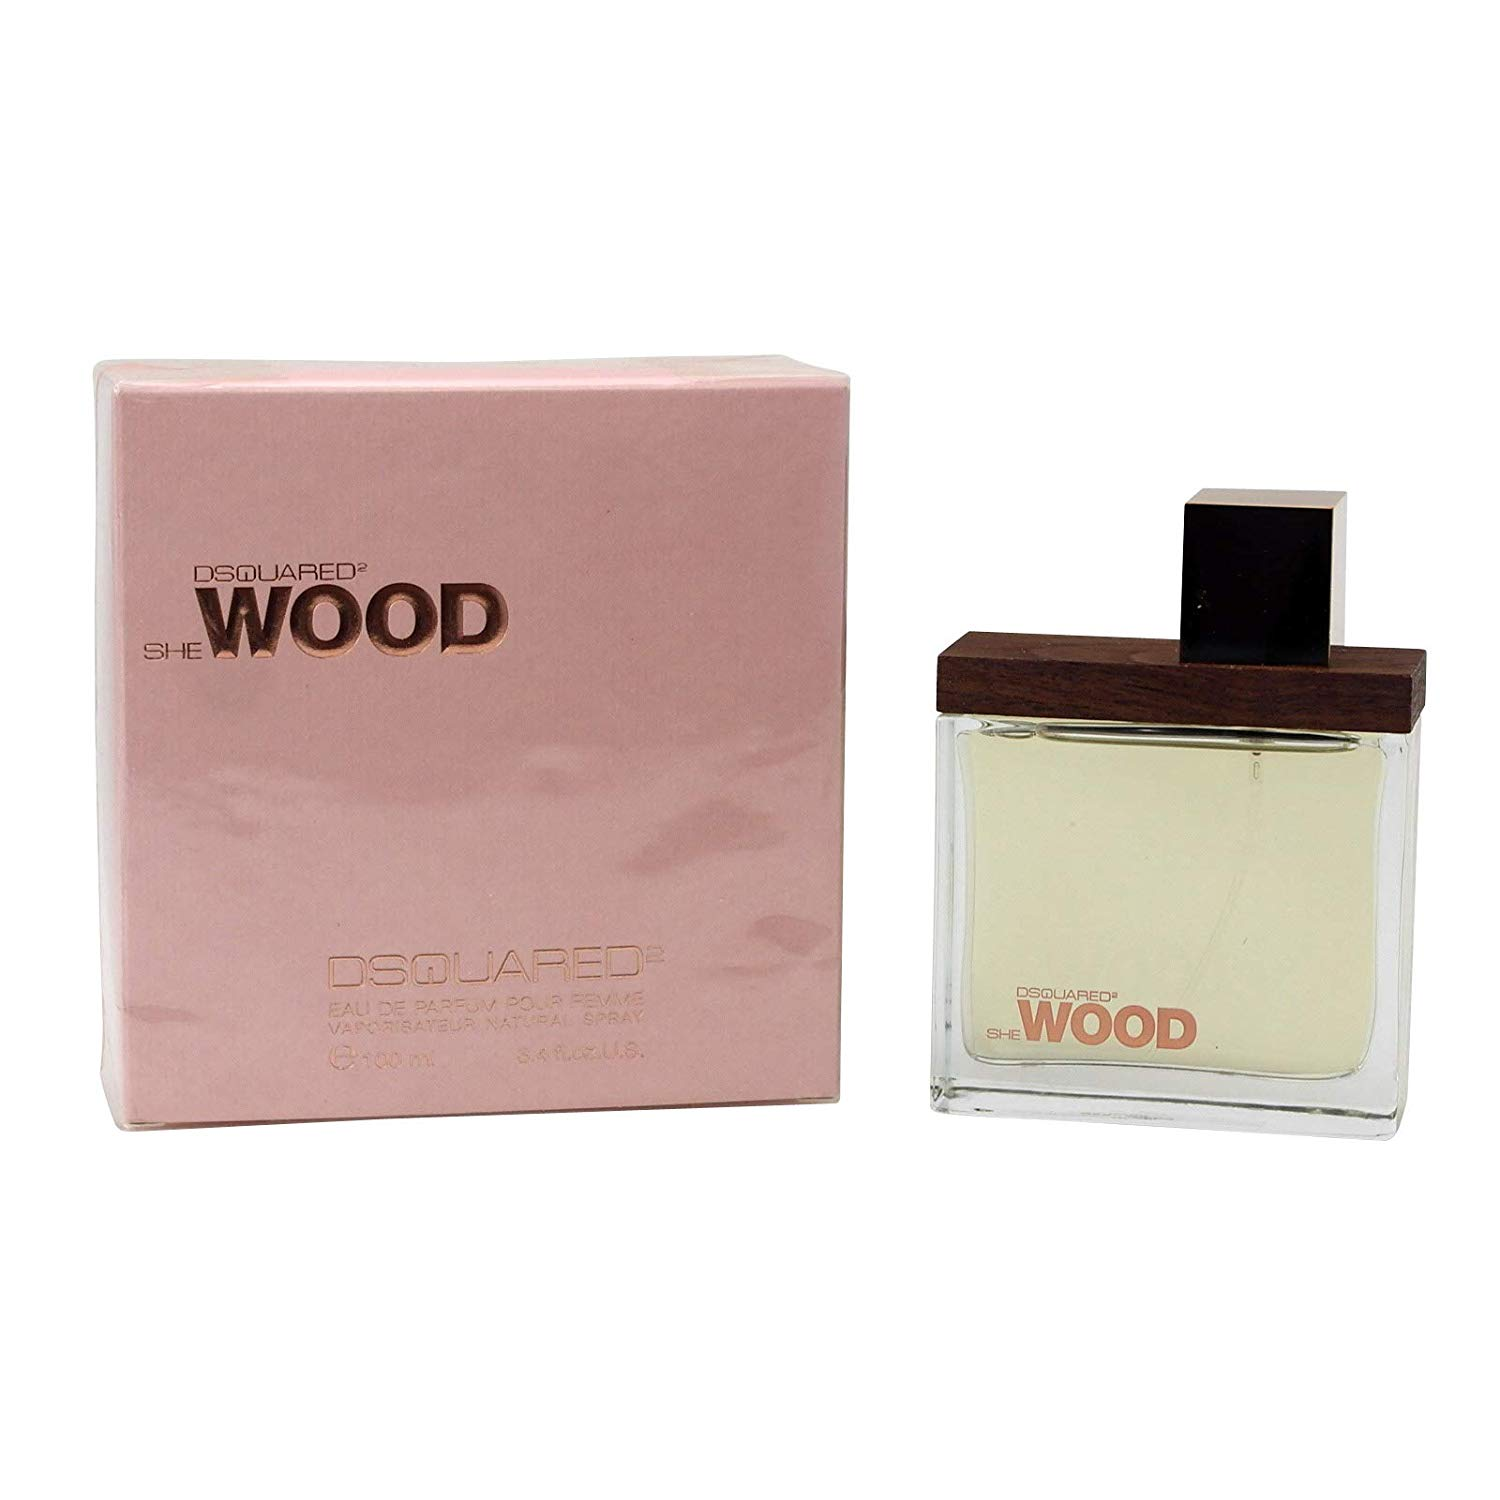 Dsquared2 She Wood Profumo Donna Edp Eau De Parfum Spray 100 Ml